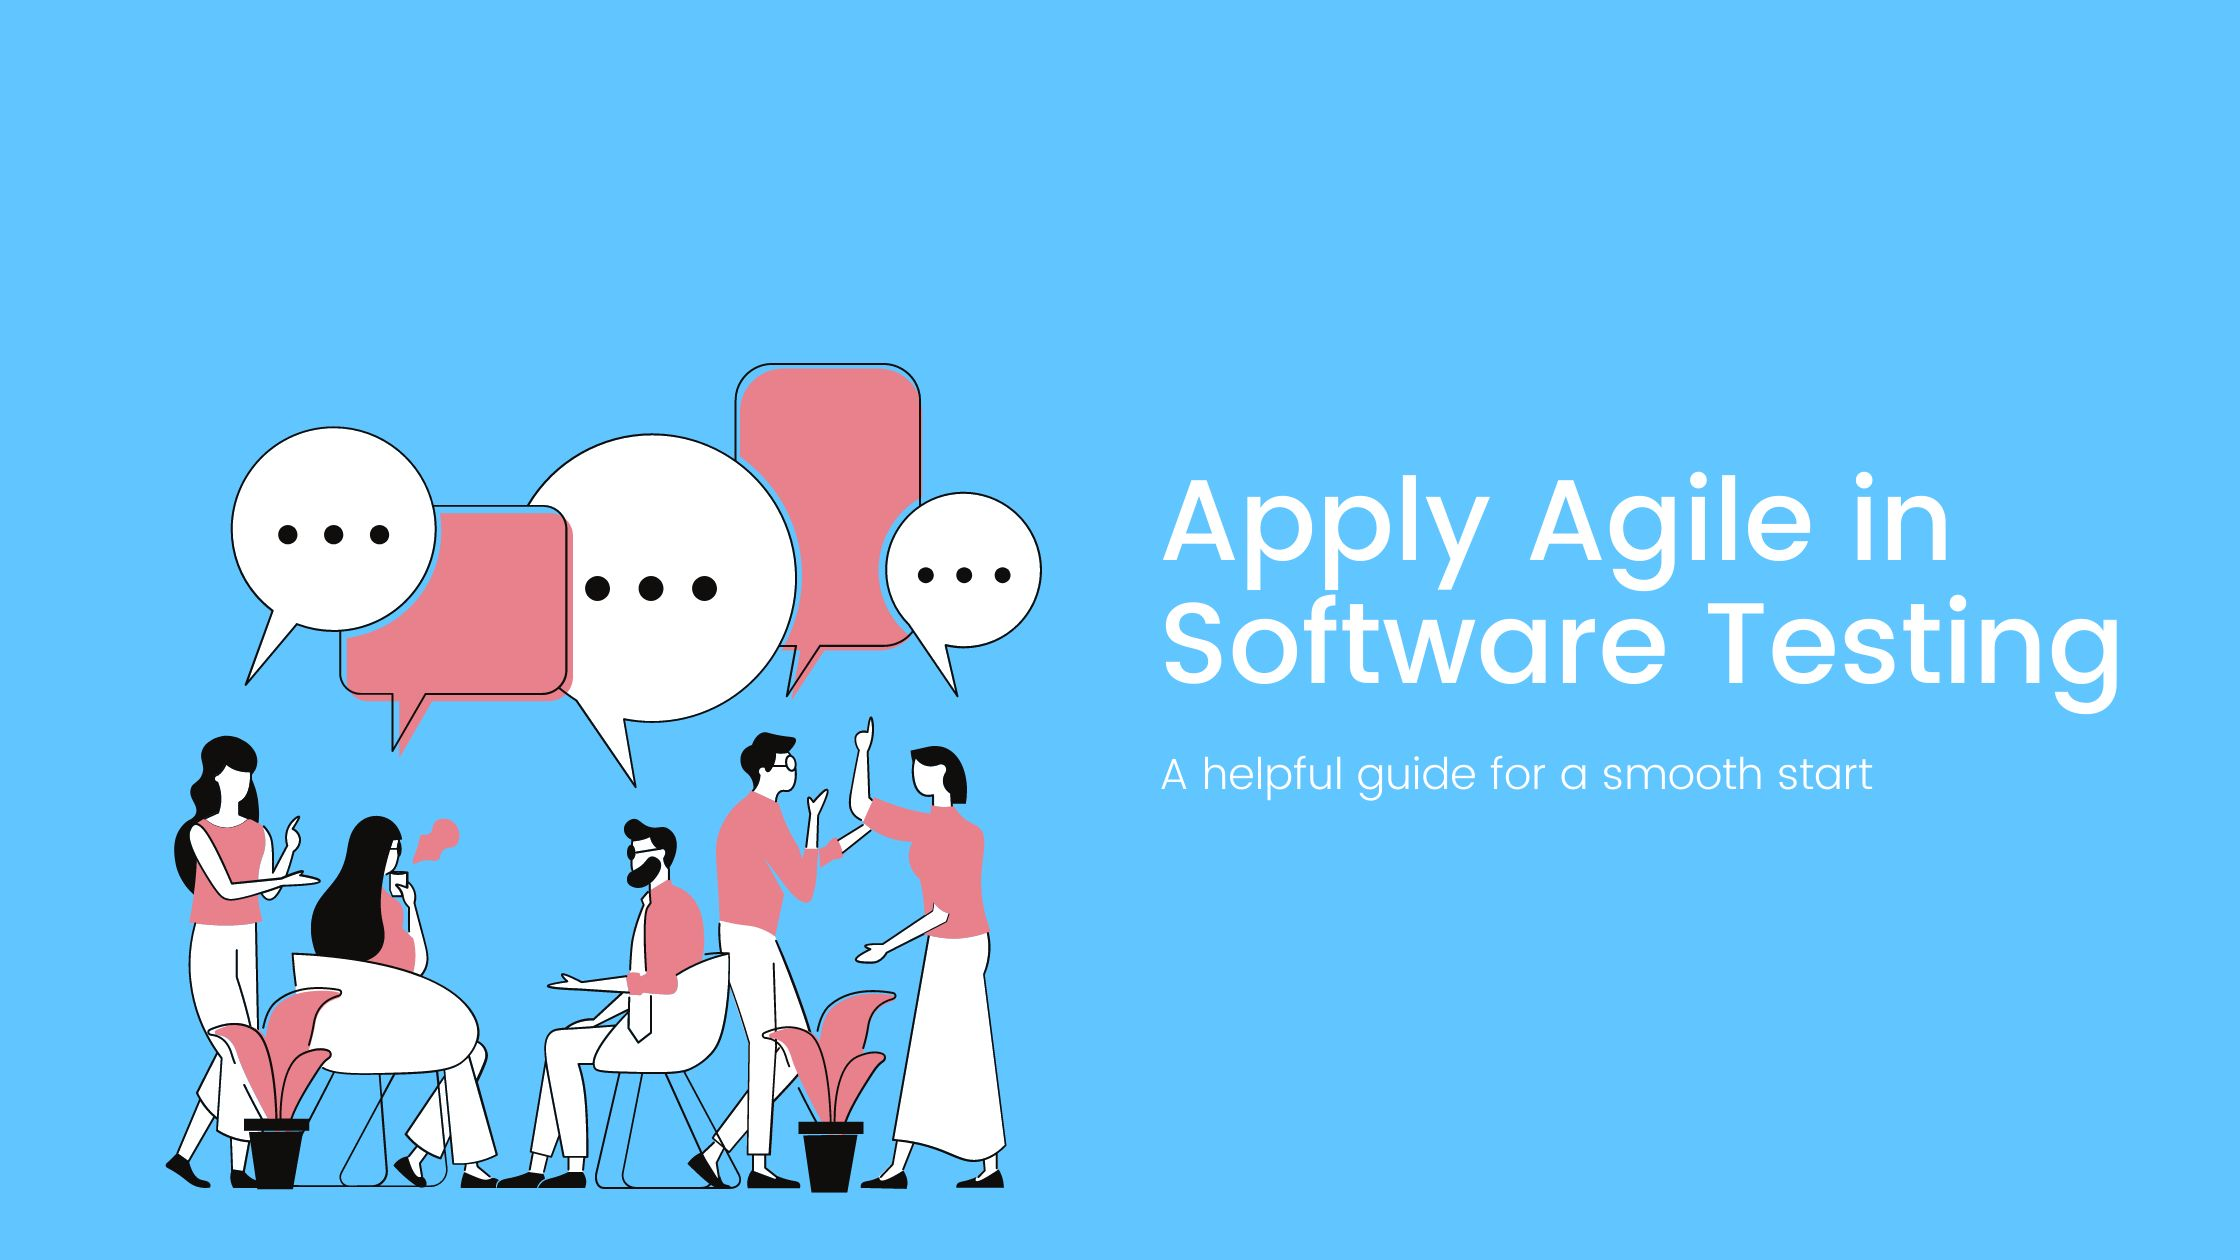 /the-relationship-between-agile-approaches-and-automation-testing-nq7m35p4 feature image